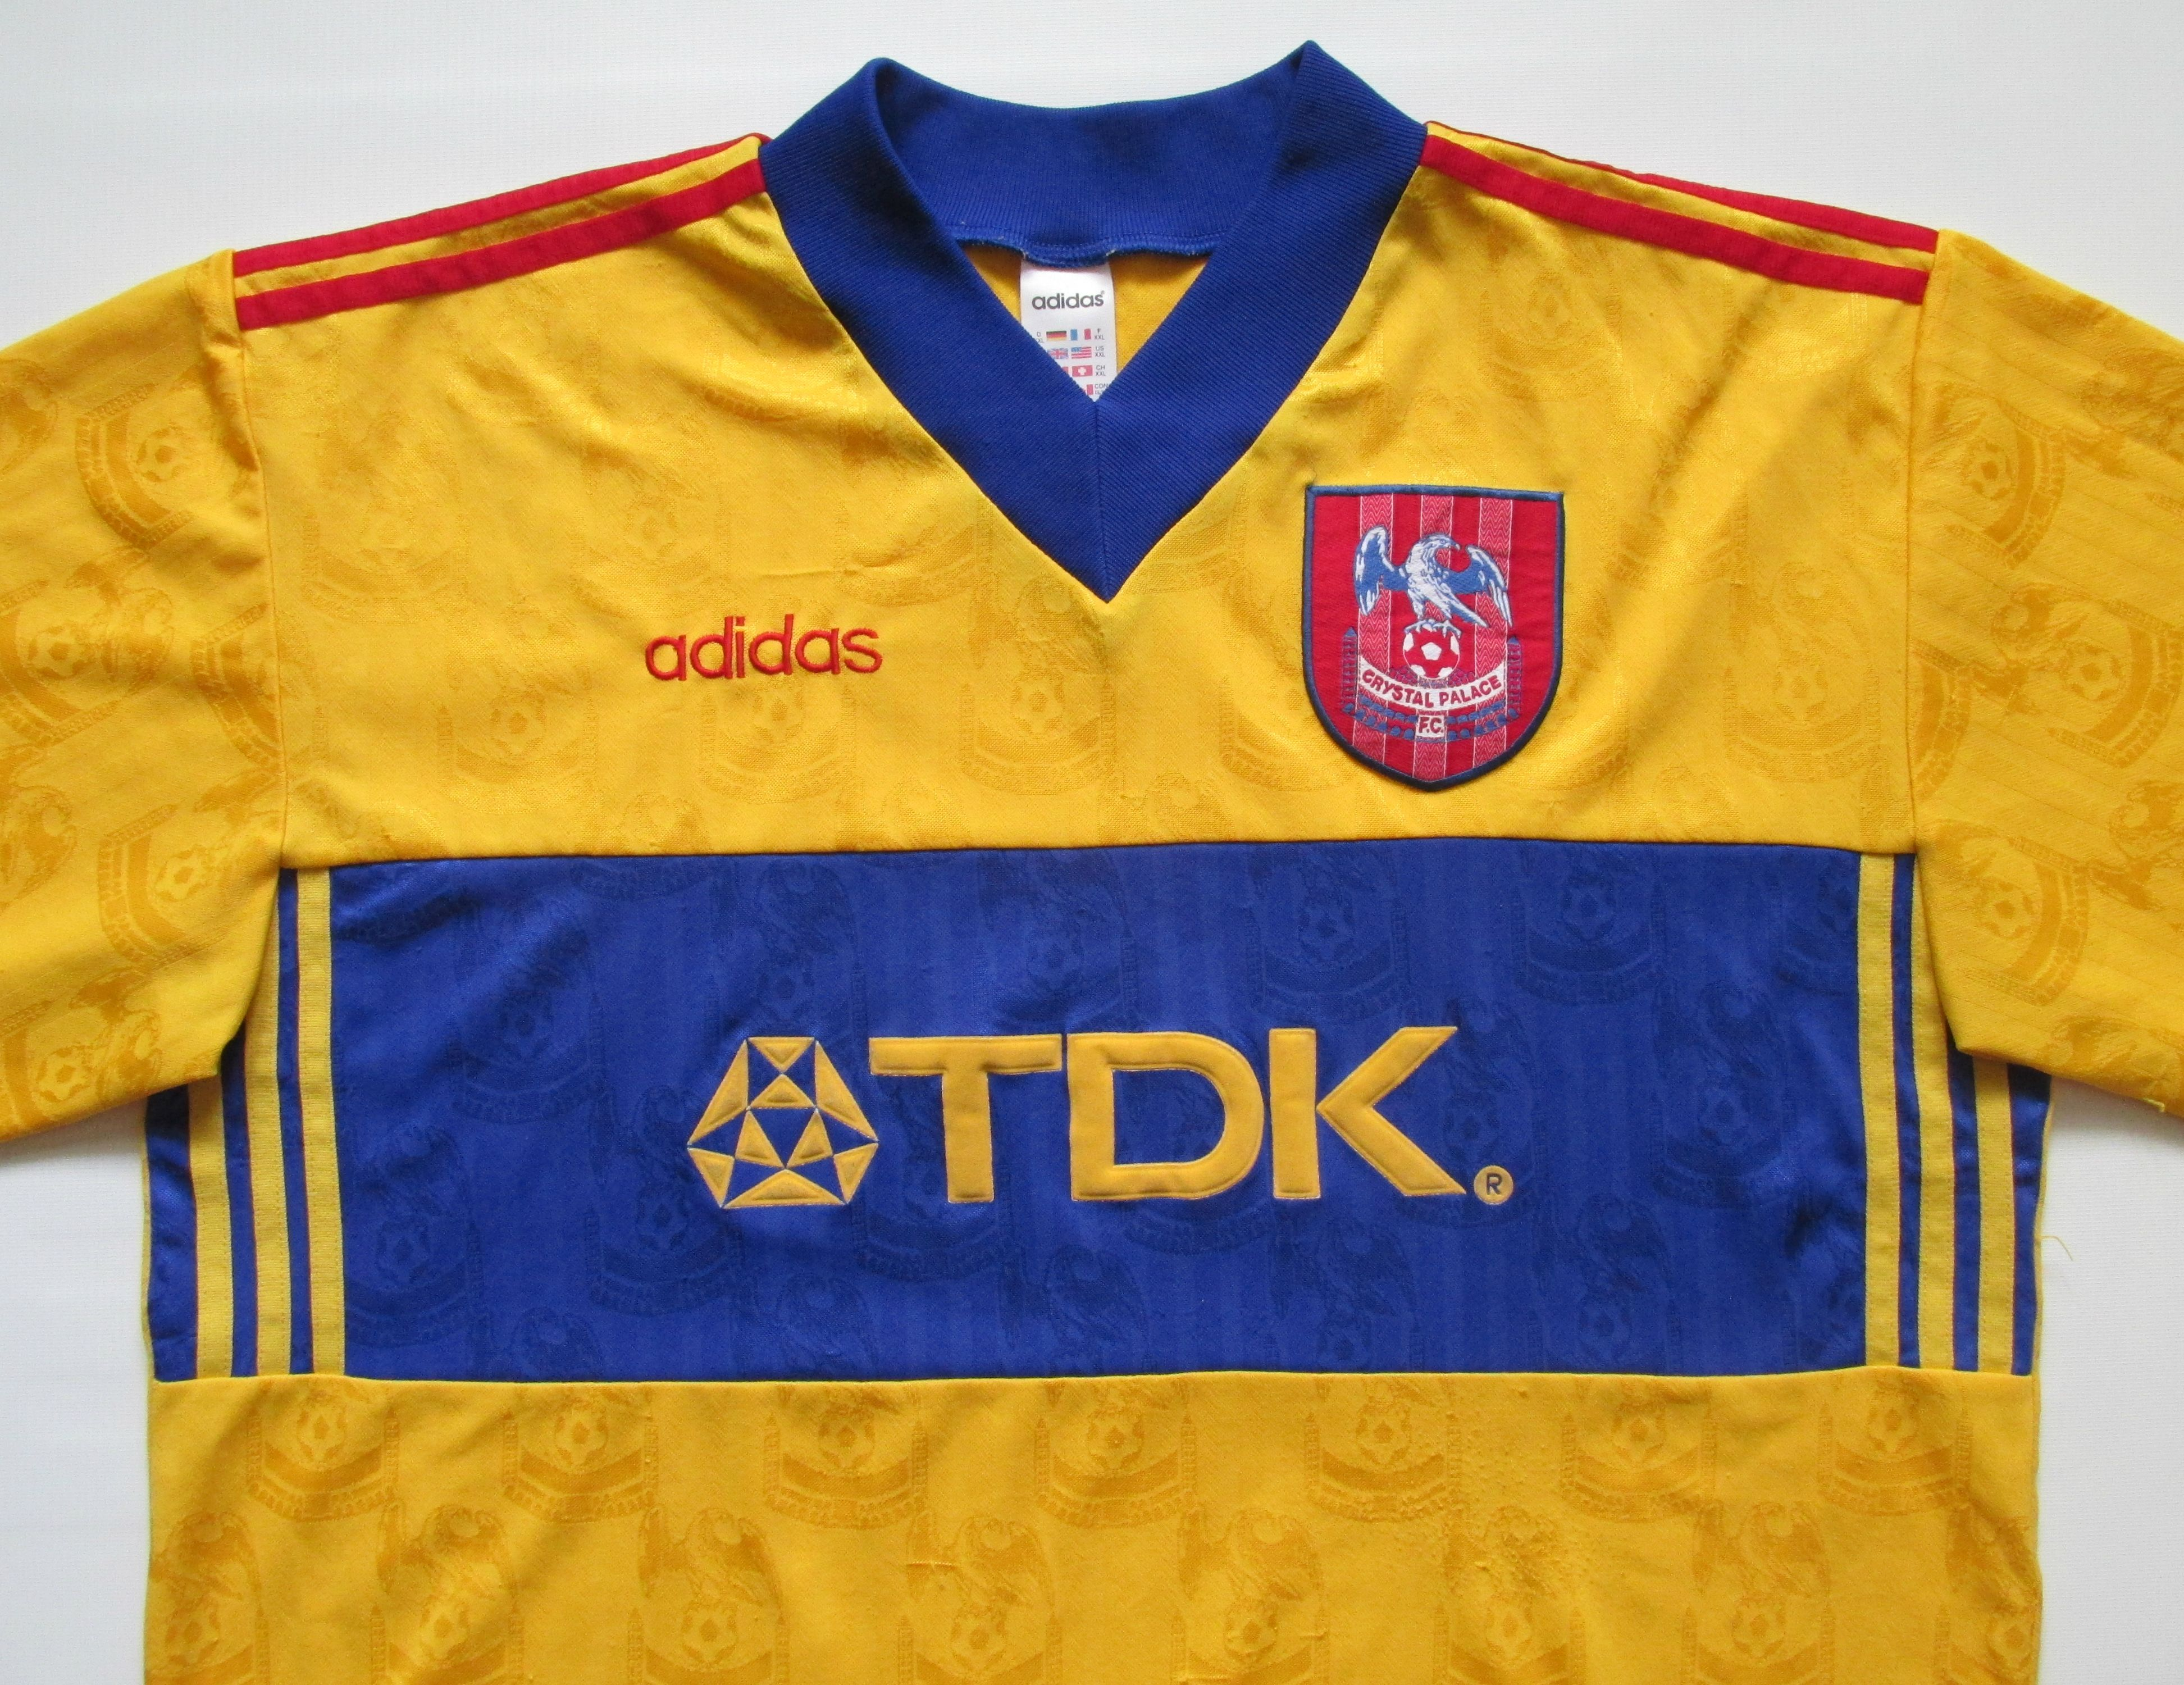 dde4ee712c26 Crystal Palace 1997 1998 away football shirt by Adidas vintage vtg retro  90s jersey soccer  Palace  CrystalPalace  adidas  adidasvintage  vintage ...